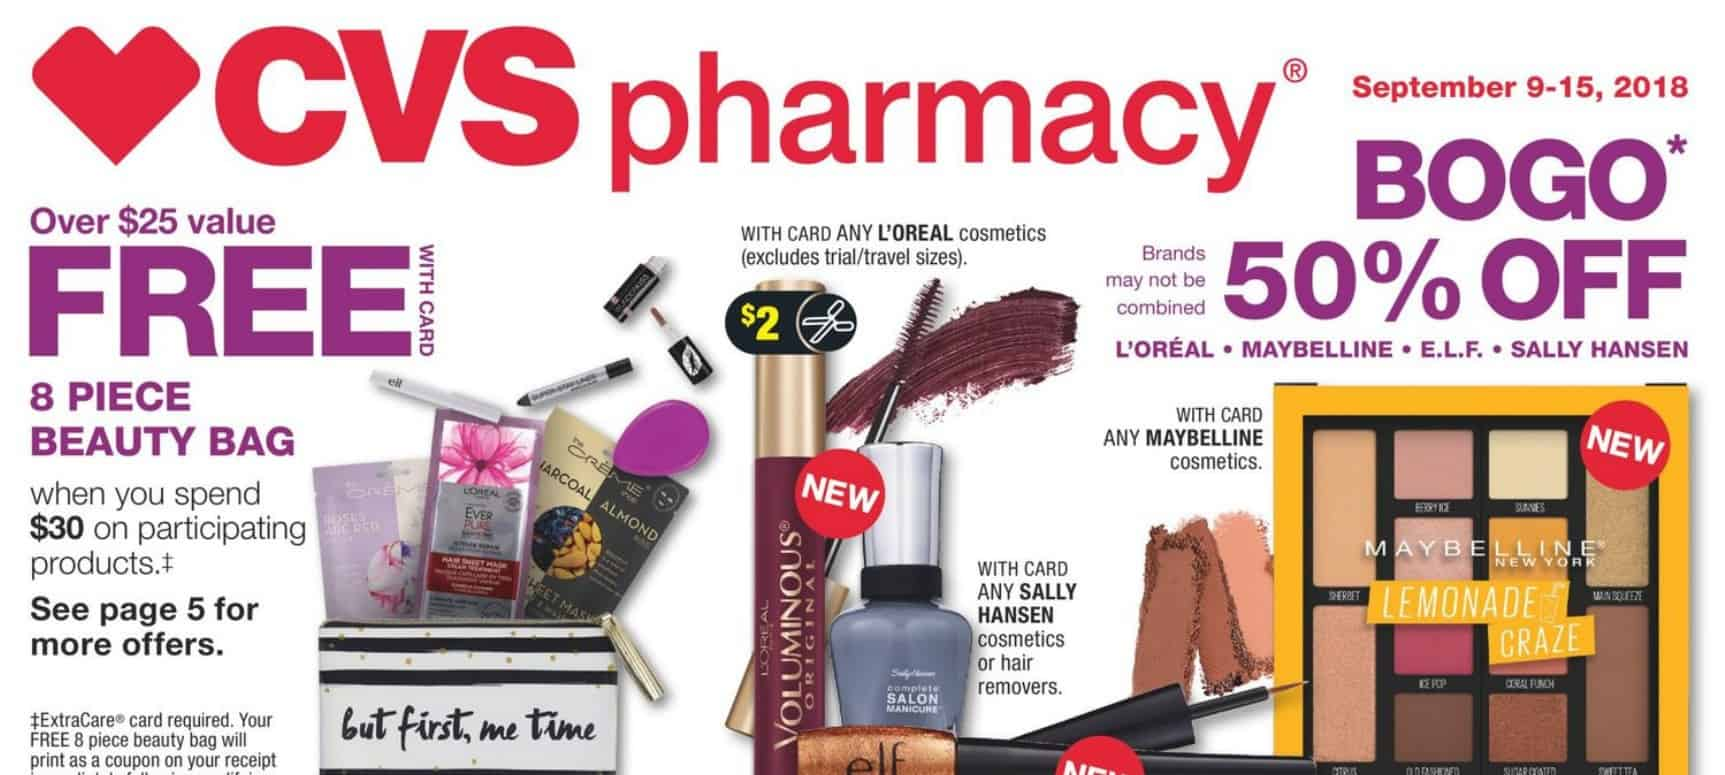 9bd14088b91 It's time to look at the deals that are going to be available this week at  CVS!!! There are some great deals and some FREEBIES available too!